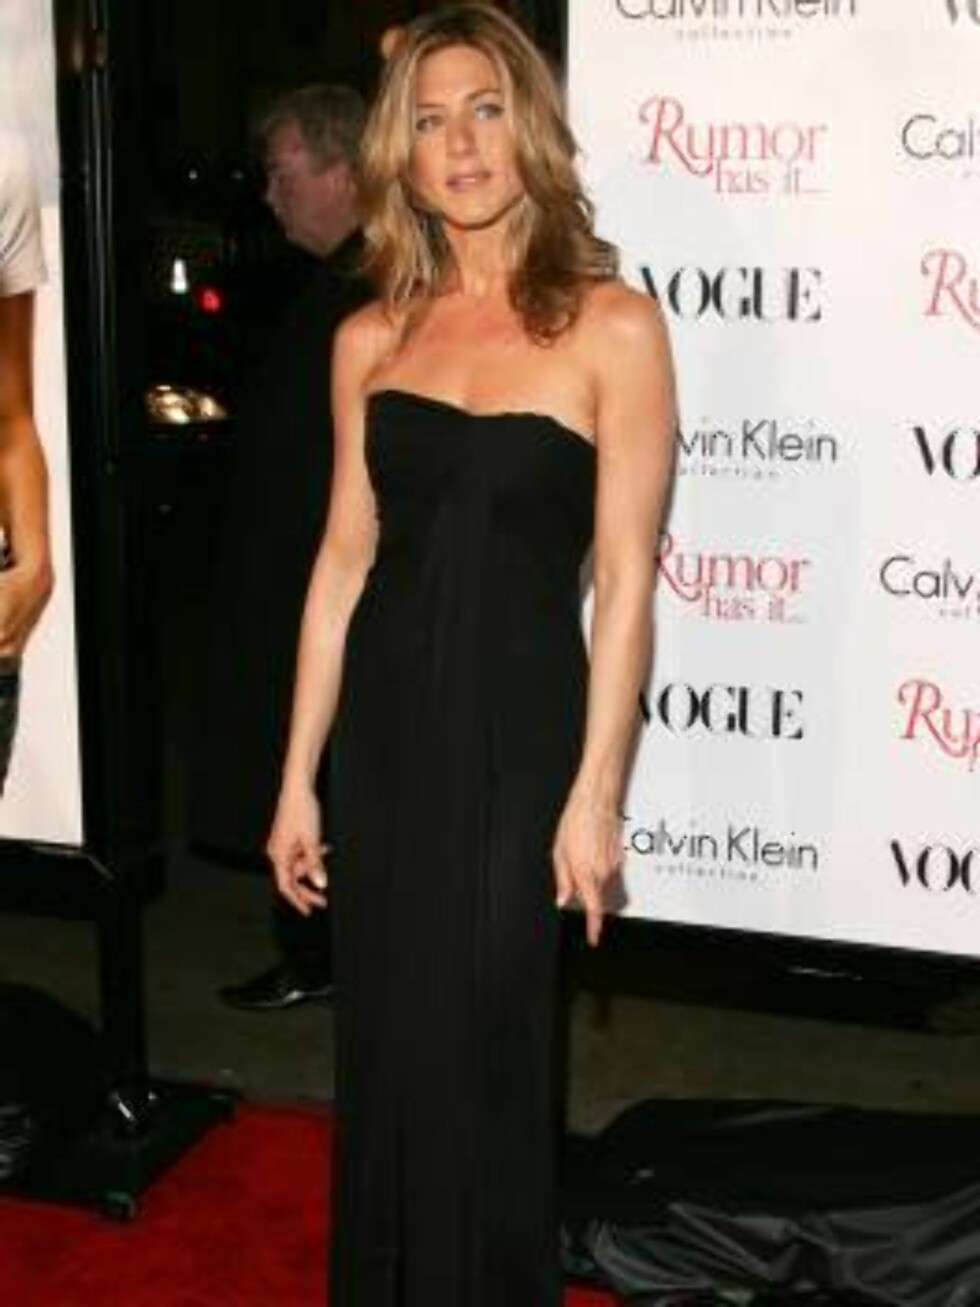 """HOLLYWOOD - DECEMBER 15:  Jennifer Aniston arrives at the premiere of """"Rumor Has It"""" at the Grauman's Chinese Theater on December 15, 2005 in Hollywood, California.  (Photo by Frazer Harrison/Getty Images) / ALL OVER PRESS56432967CA037_Premiere_of_W *** L Foto: All Over Press"""